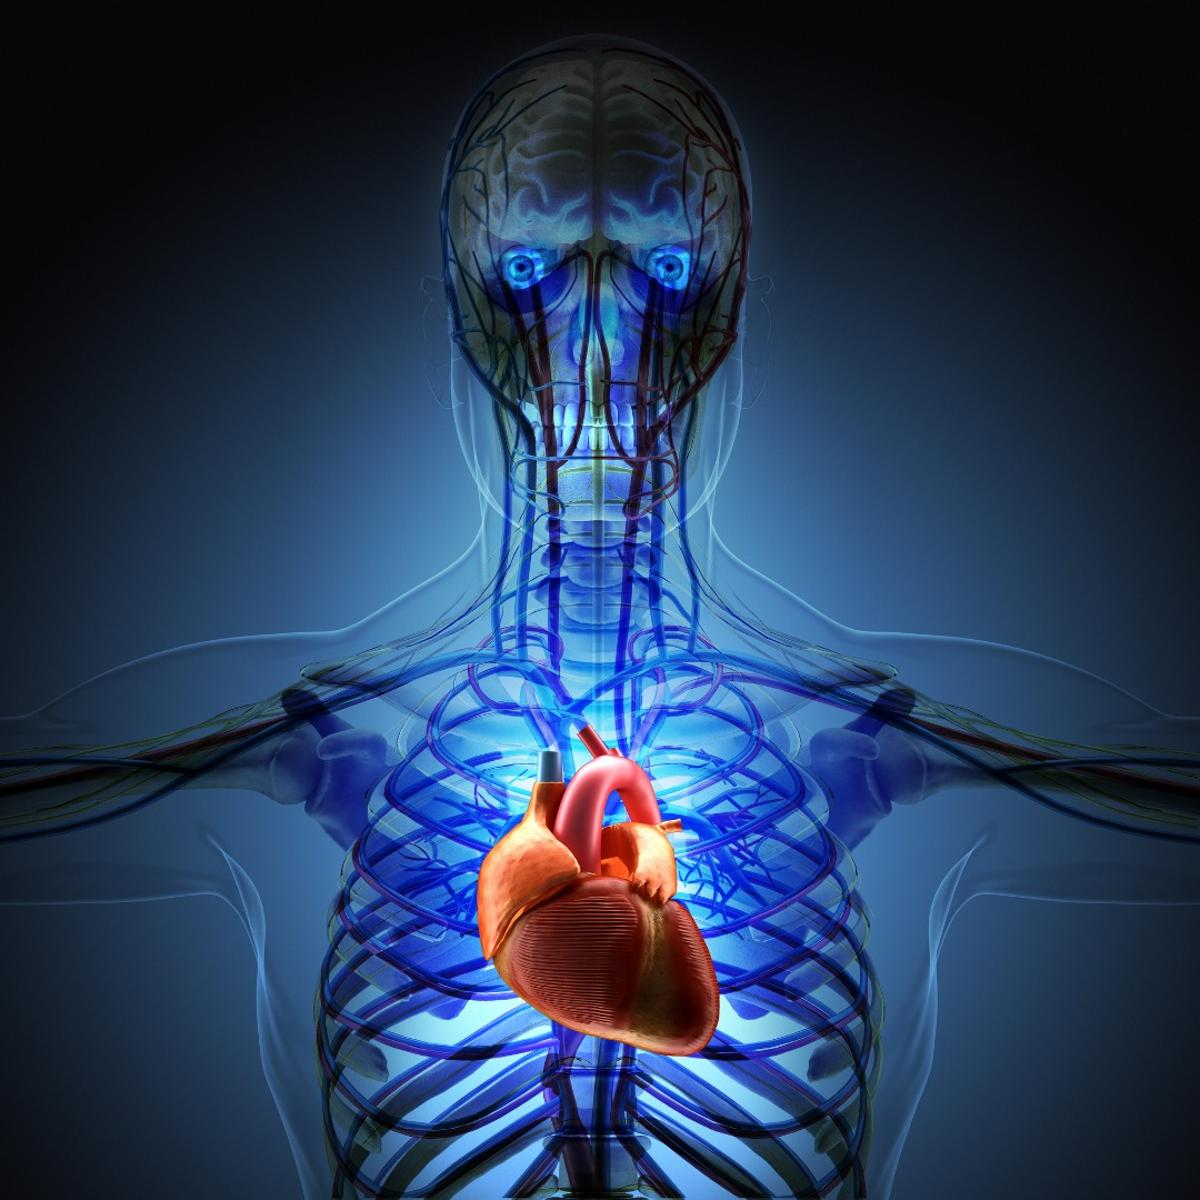 Scientists hope to use carbon nanofibers to mend broken electrical circuits in the heart